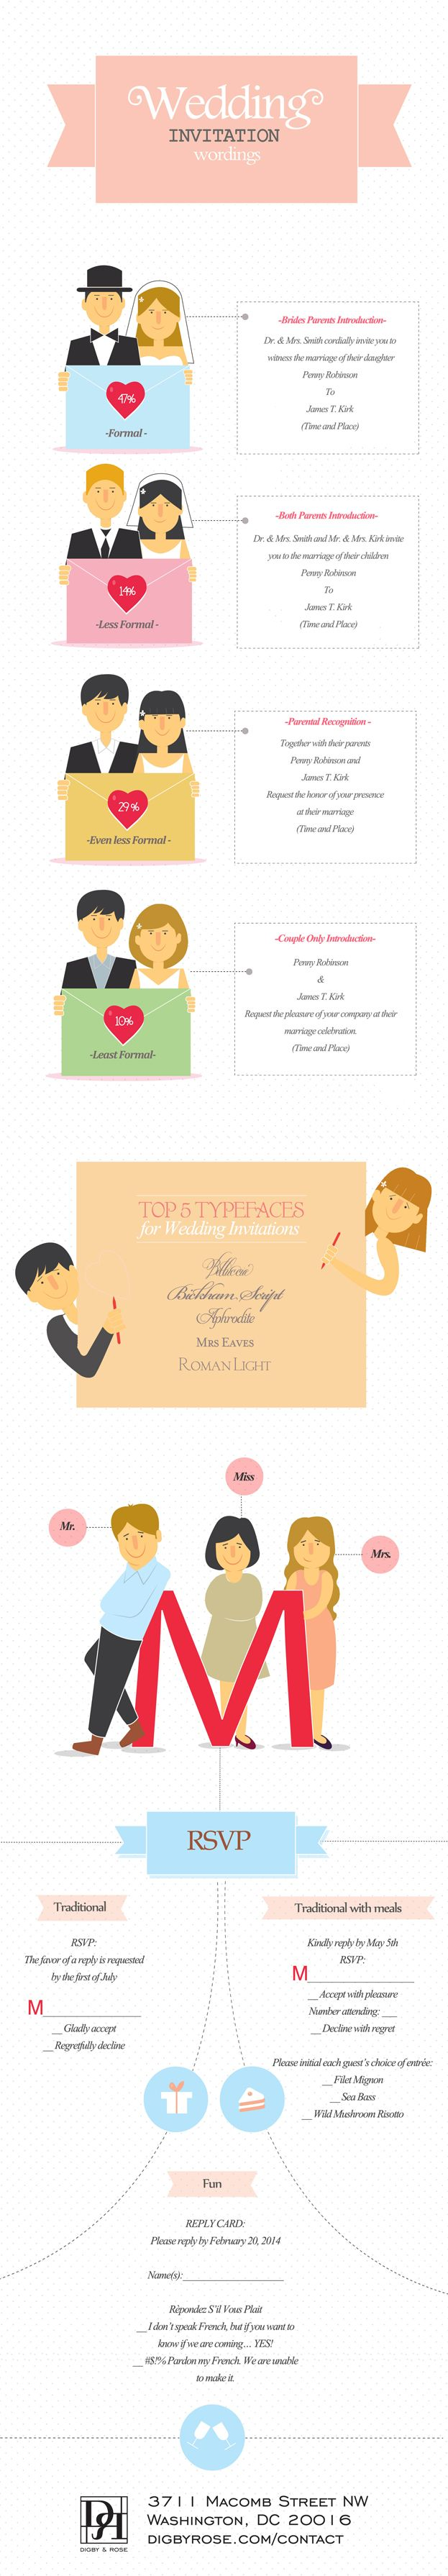 [INFOGRAPHIC] Wedding Invitation Wording and RSVP 2013